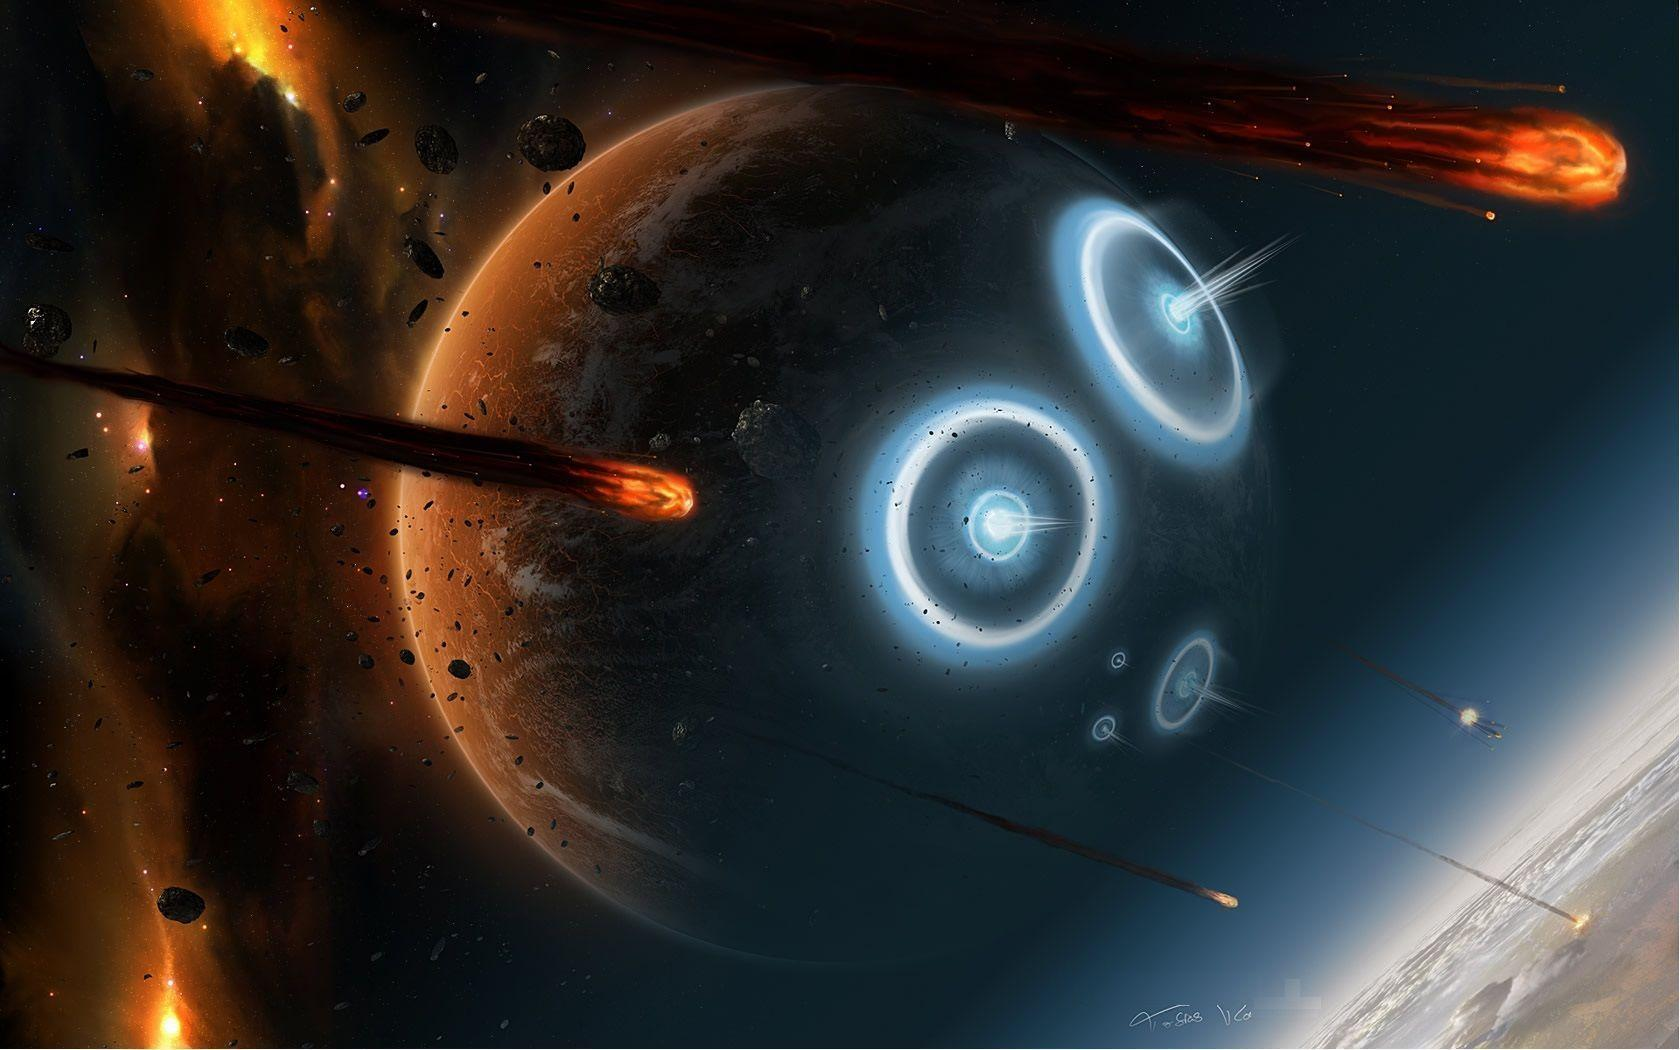 Epic Backgrounds Wallpapers 1680x1050PX Wallpaper Space 41617